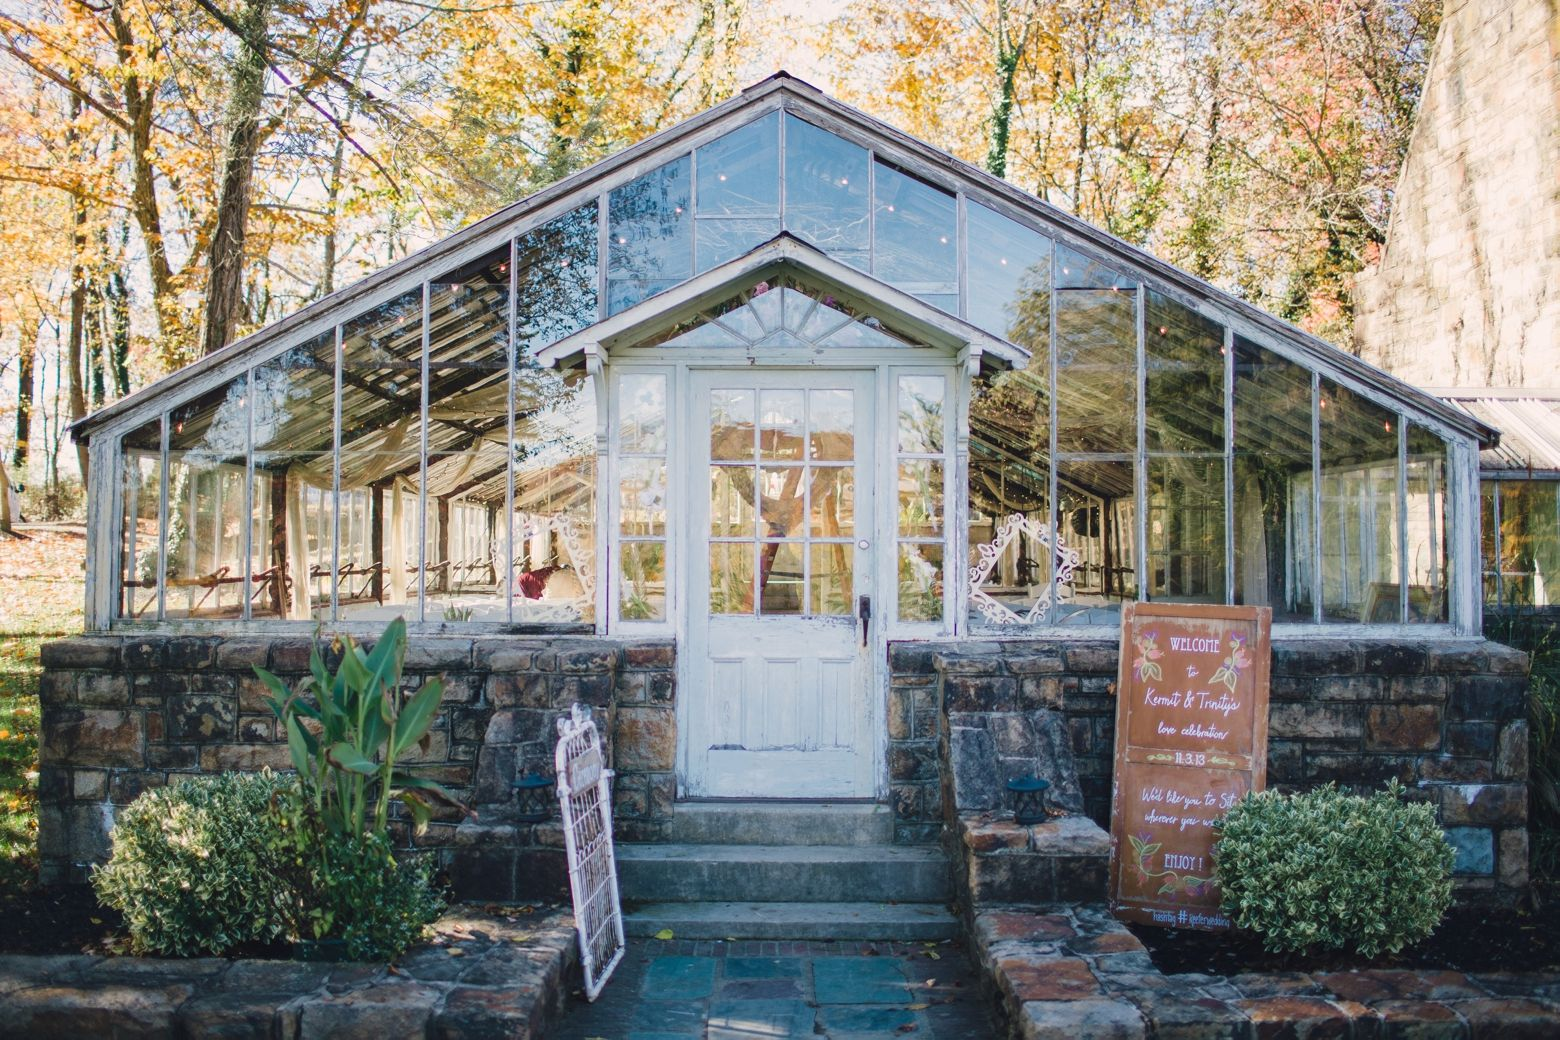 30 best rustic outdoors eclectic unique beautiful wedding venues 30 best rustic outdoors eclectic unique beautiful wedding venues in pennsylvania maryland new jersey new york delaware junglespirit Image collections